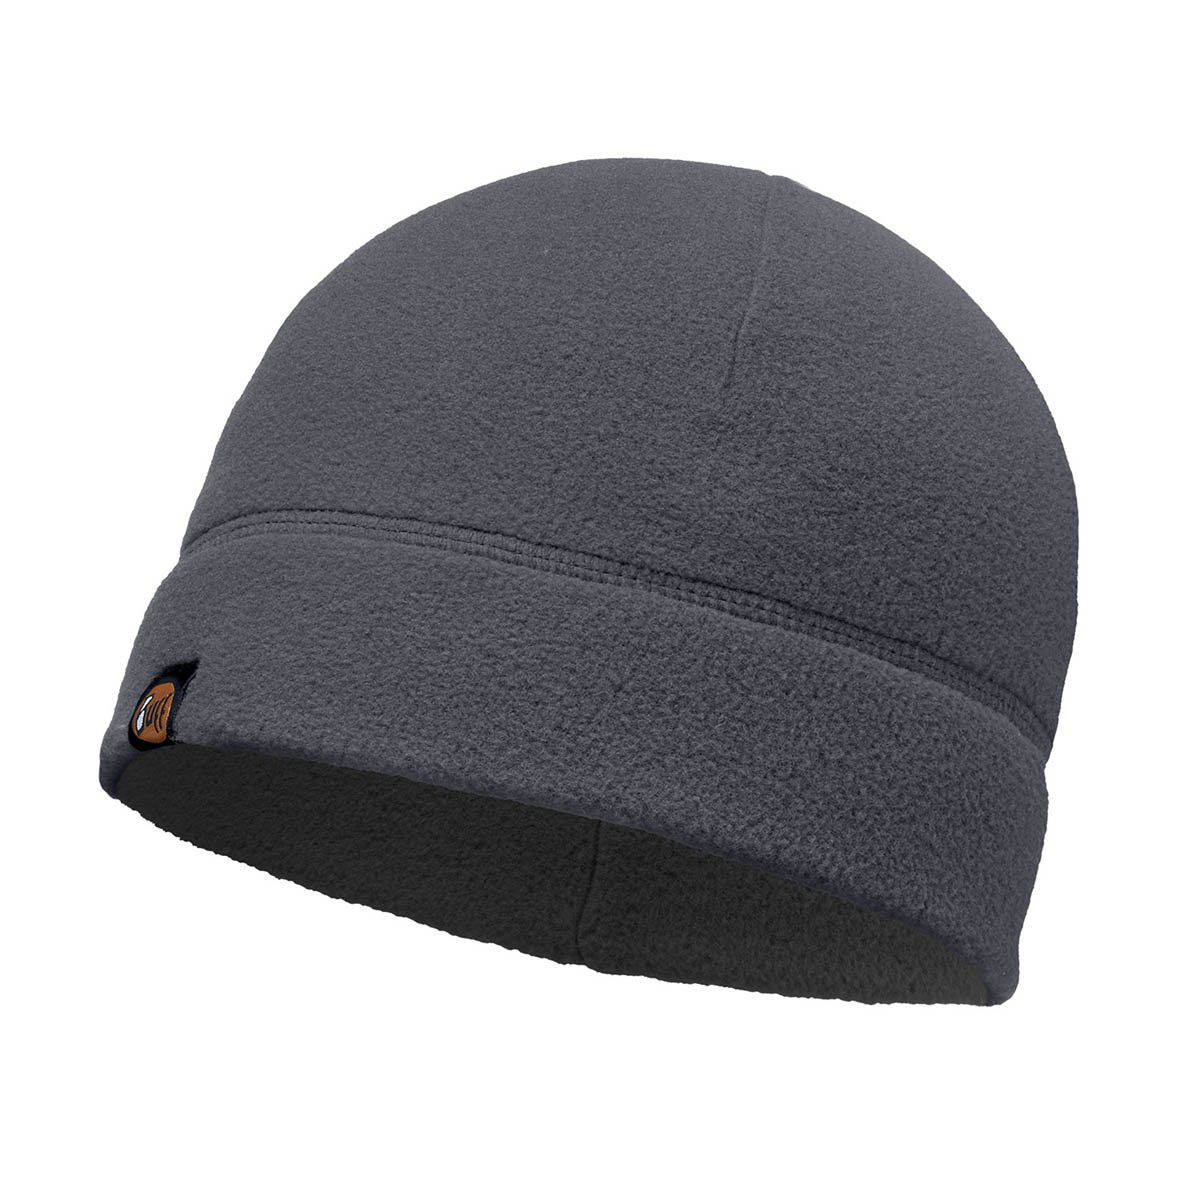 BUFF - SOLID GREY POLAR HAT